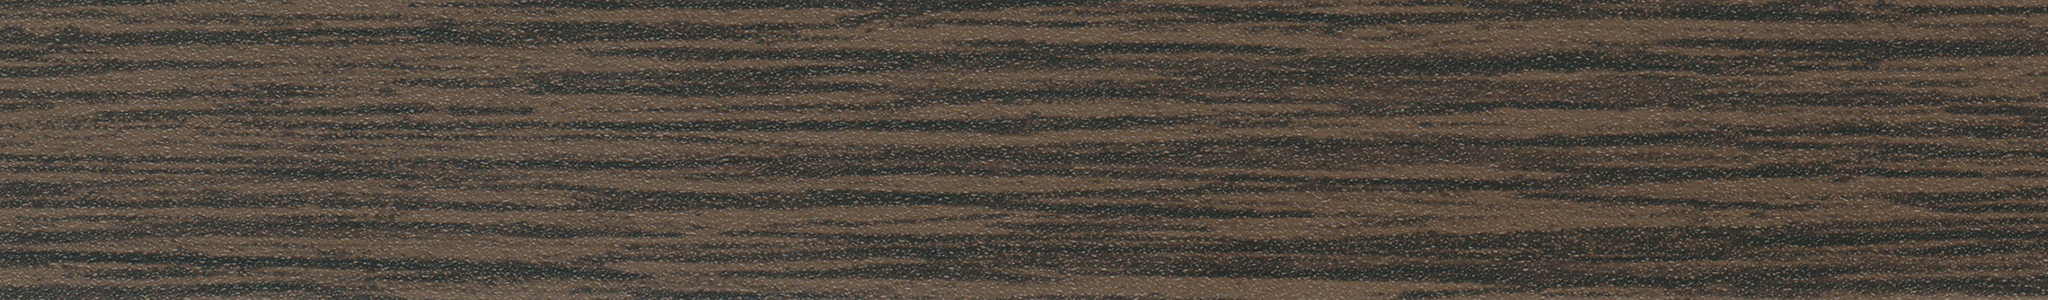 HD 282177 Chant ABS Wenge Perle